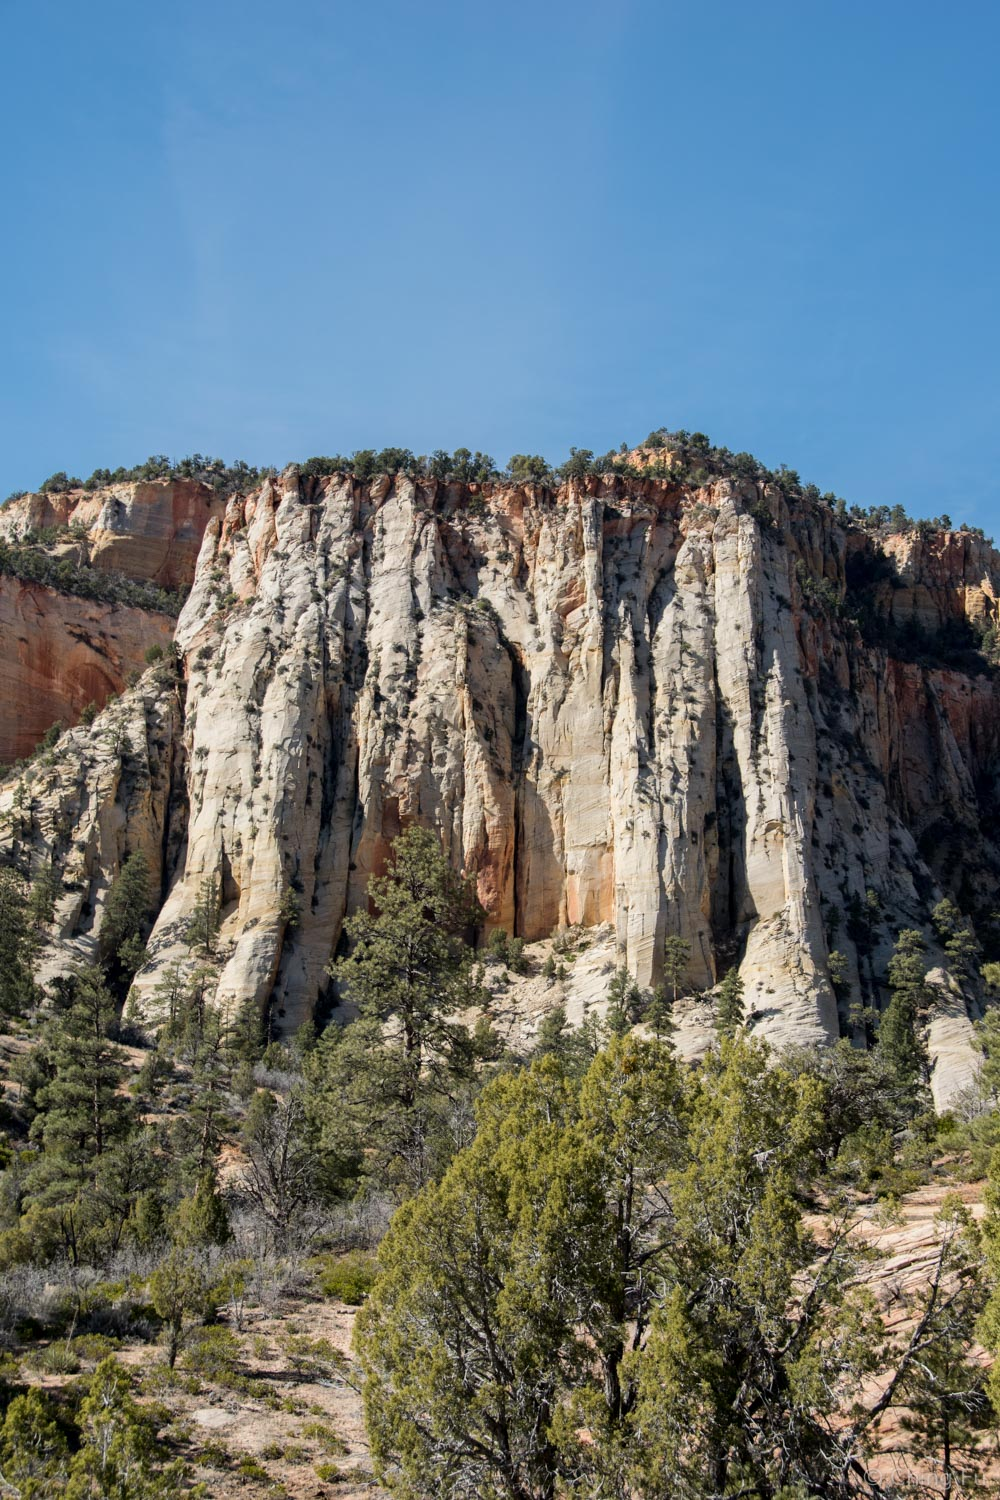 View from Zion-Mount Carmel Highway.